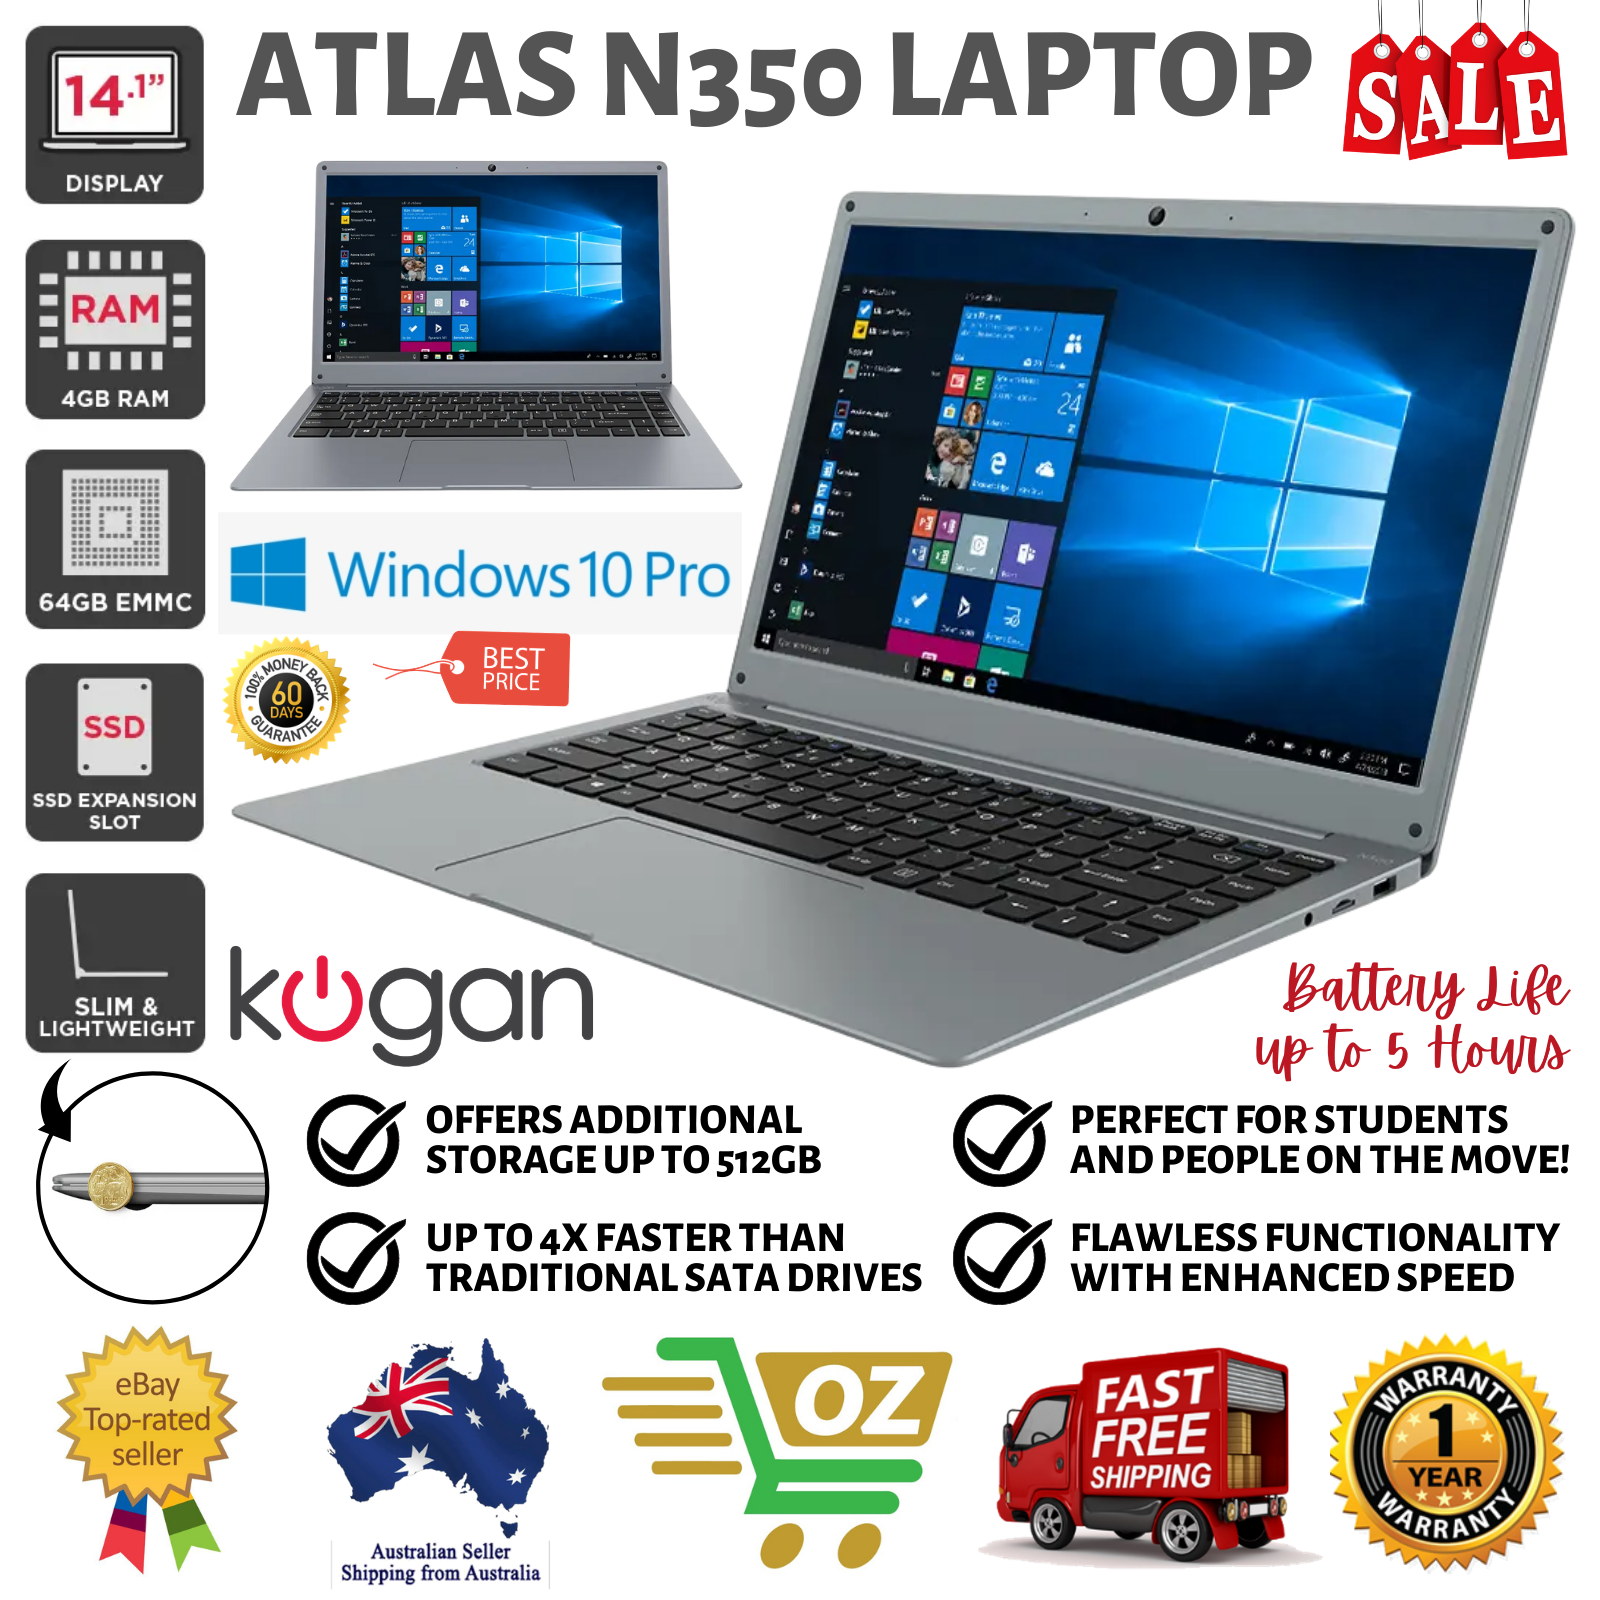 "Laptop Windows - Kogan Atlas 14.1"" 4GB N350 Slim and Lightweight Laptop with Windows 10 Pro"